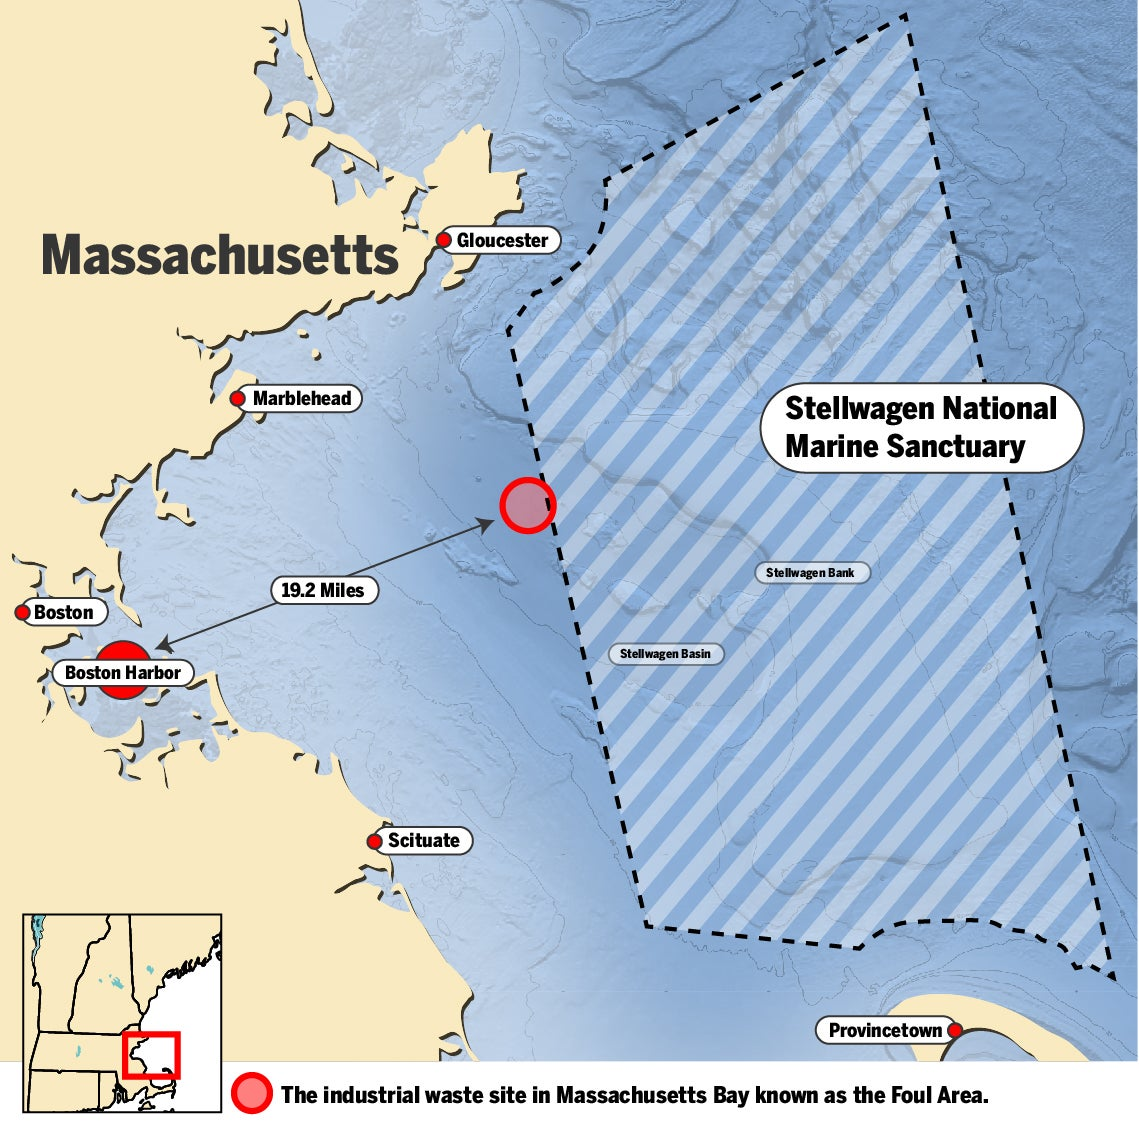 Location of the industrial waste site in Massachusetts Bay Source: New England District U.S. Army Corps of Engineers